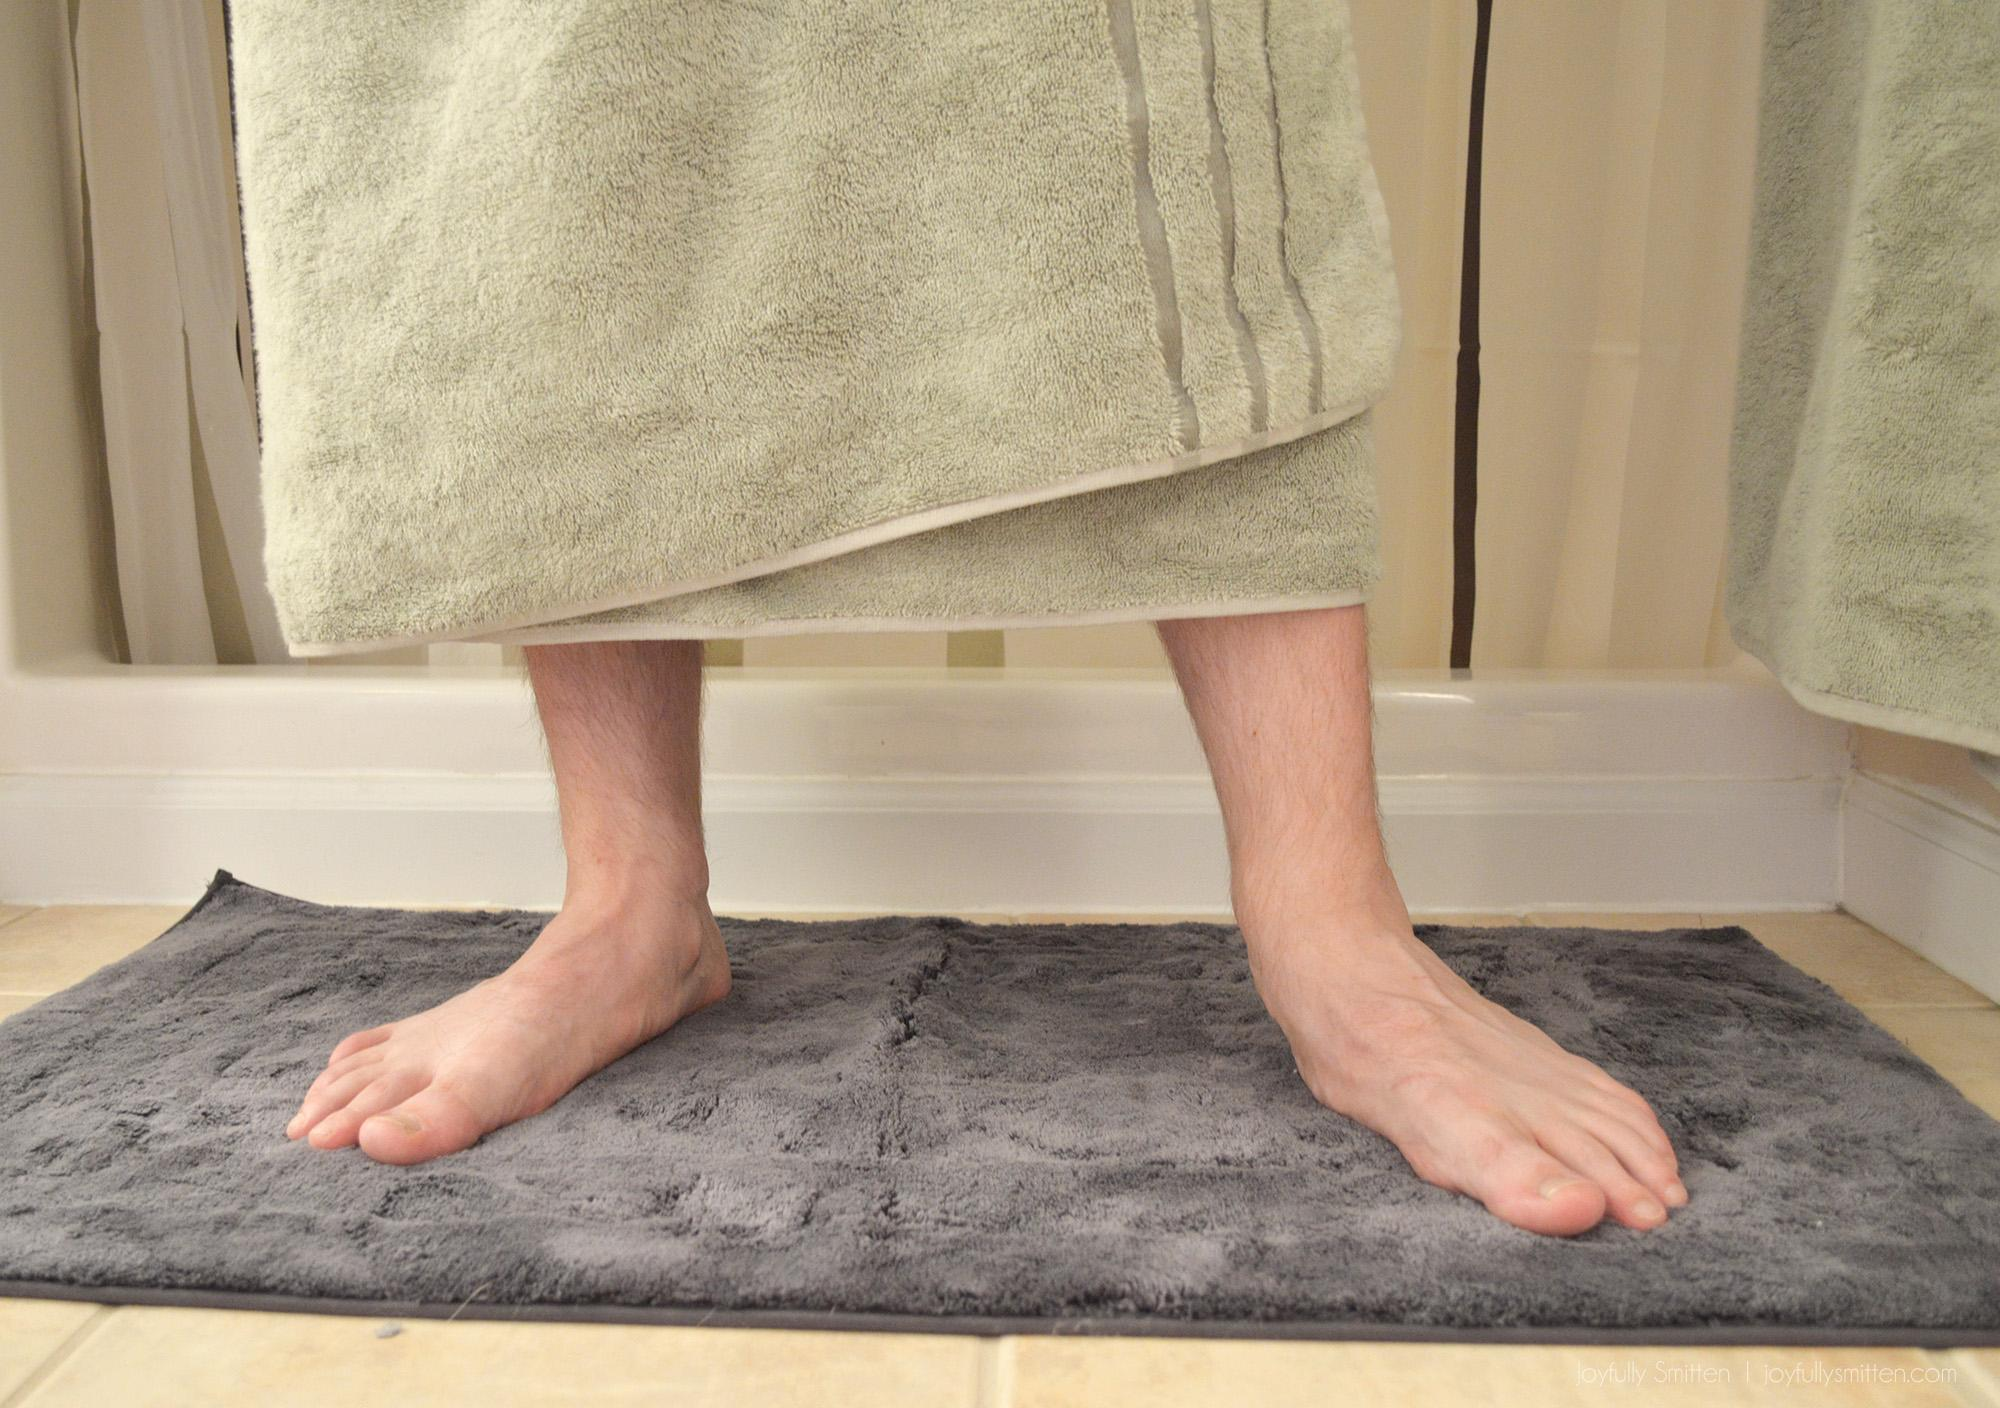 Bamboo Bath Mats and Bamboo Bath Sheets from Cariloha are life changing! Hello softness and goodbye scratchy odor-full towels!